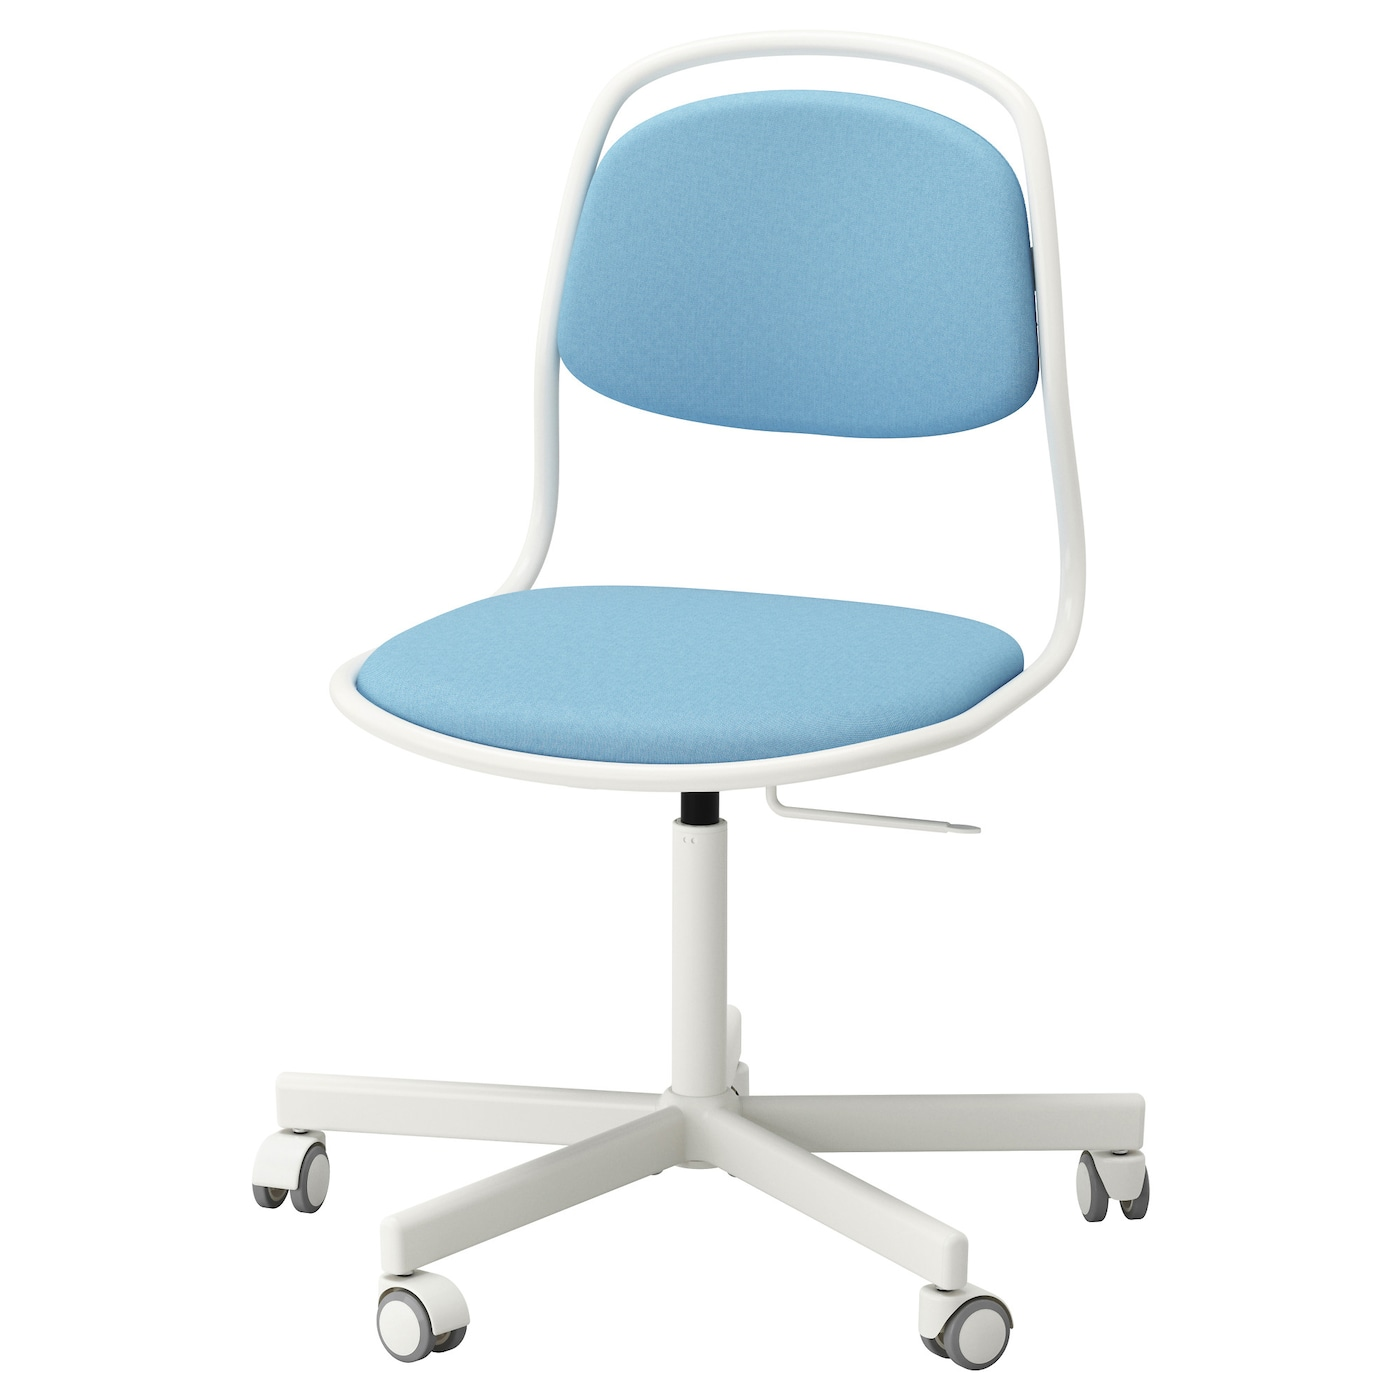 Rfj ll sporren swivel chair white vissle light blue ikea for White chair